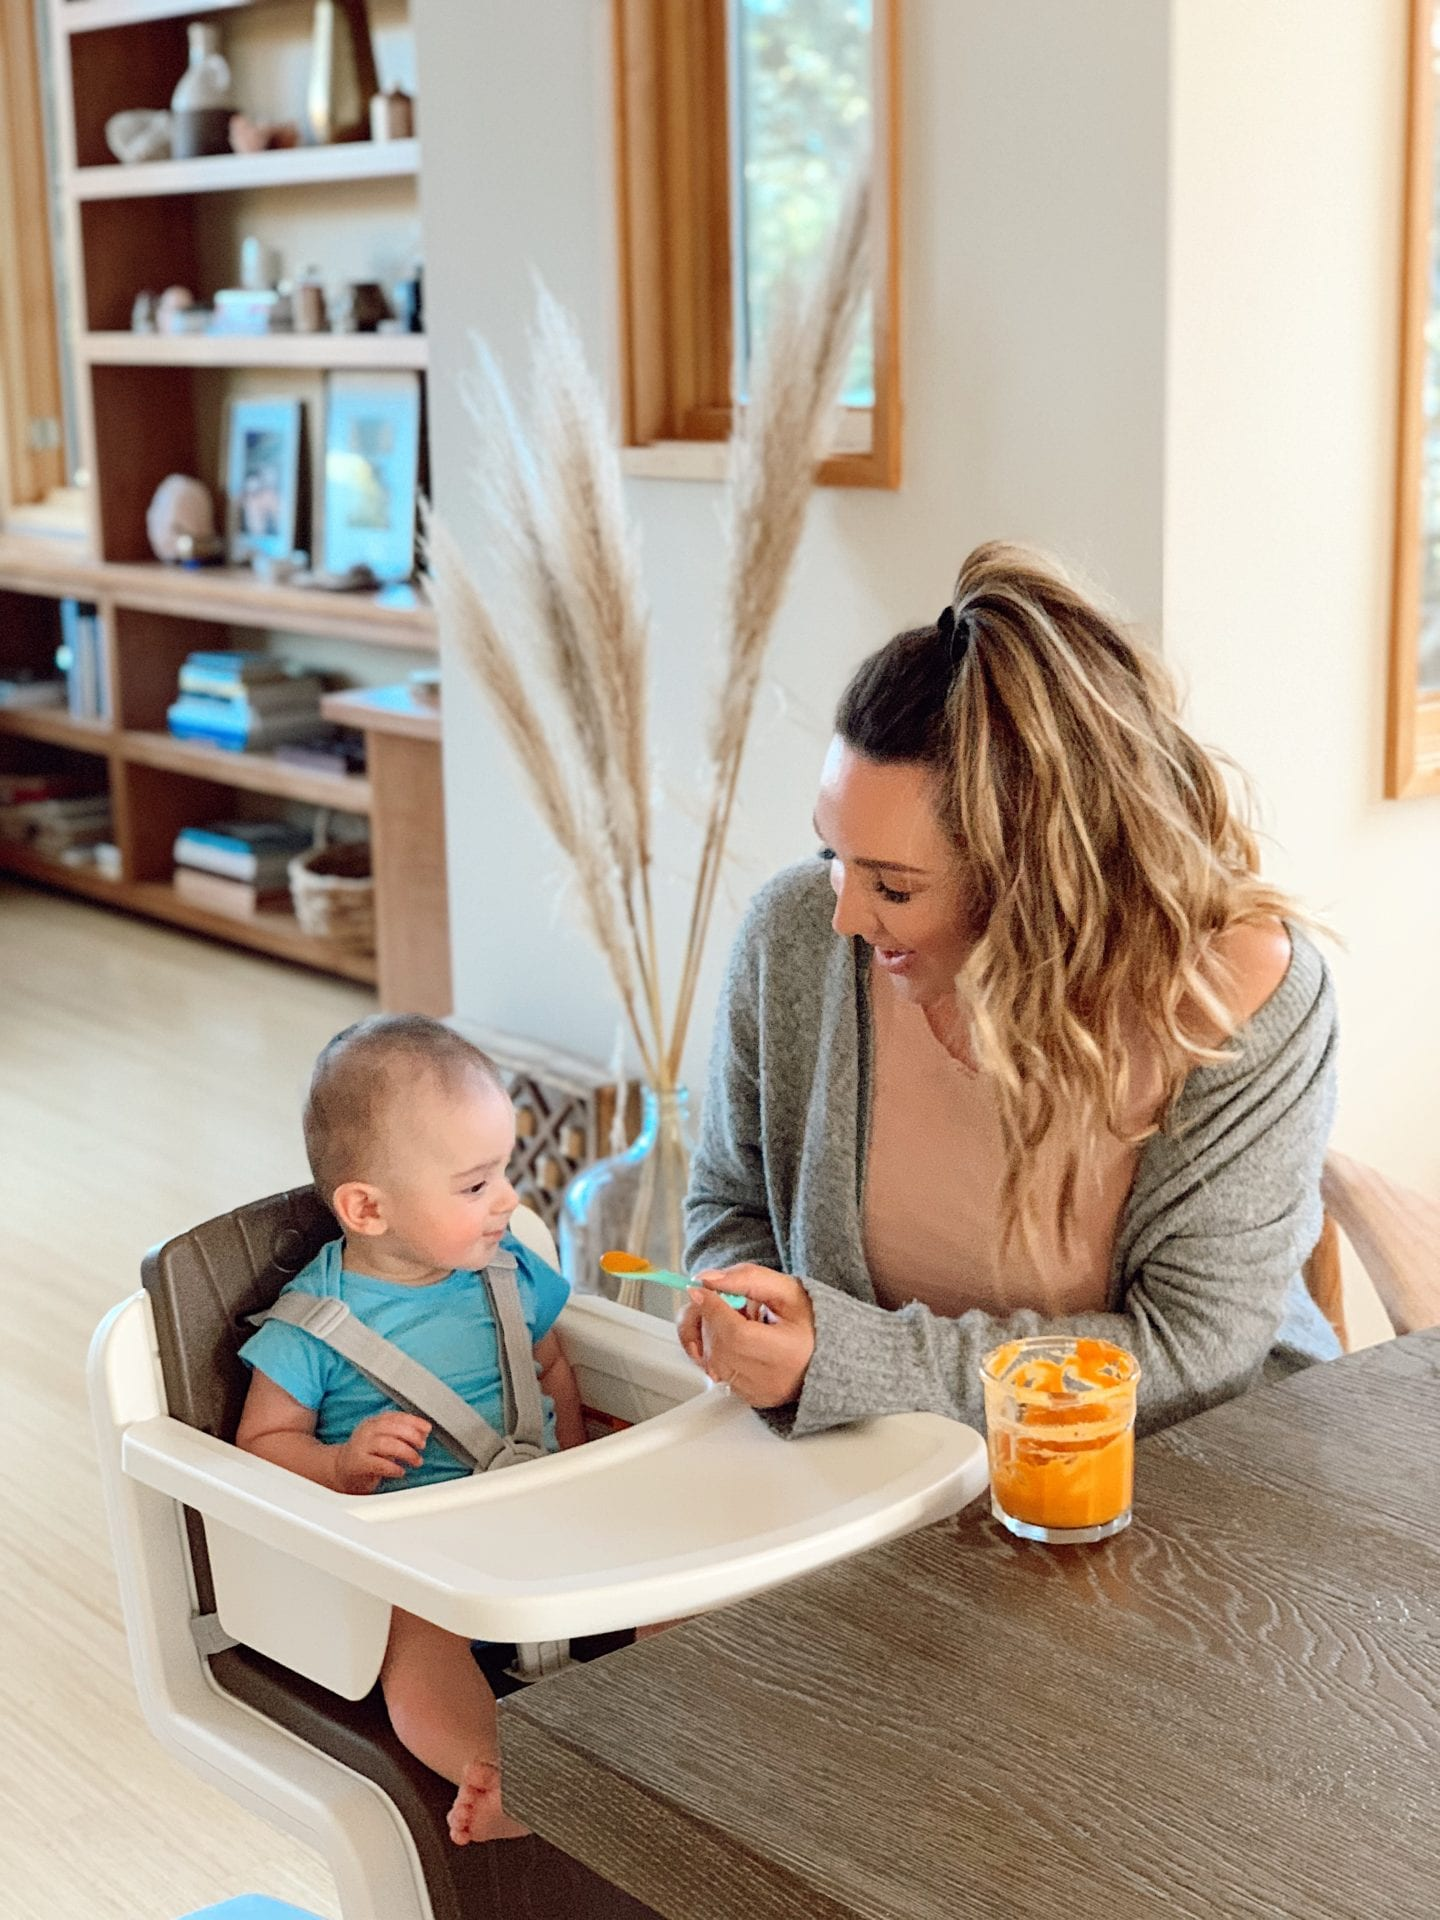 DIY baby food purees | Baby Food by popular San Francisco motherhood blog, Just Add Glam: image of a mom feeding her infant son some baby food as he sits in a Nuna ZAAZ high chair.